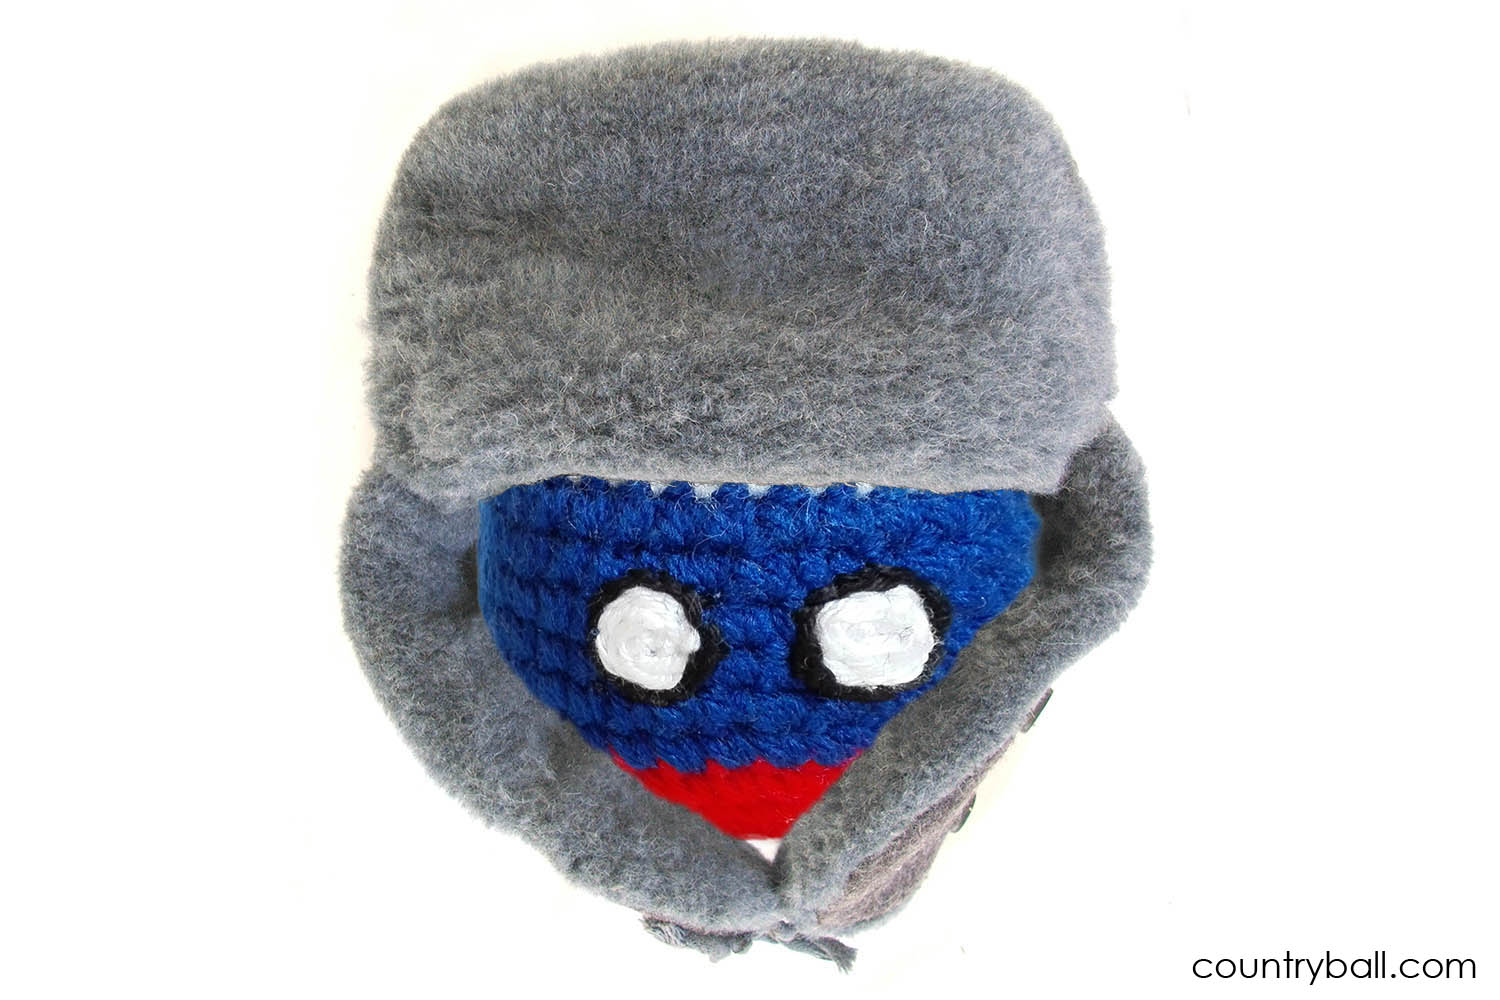 Russiaball wearing an Ushanka